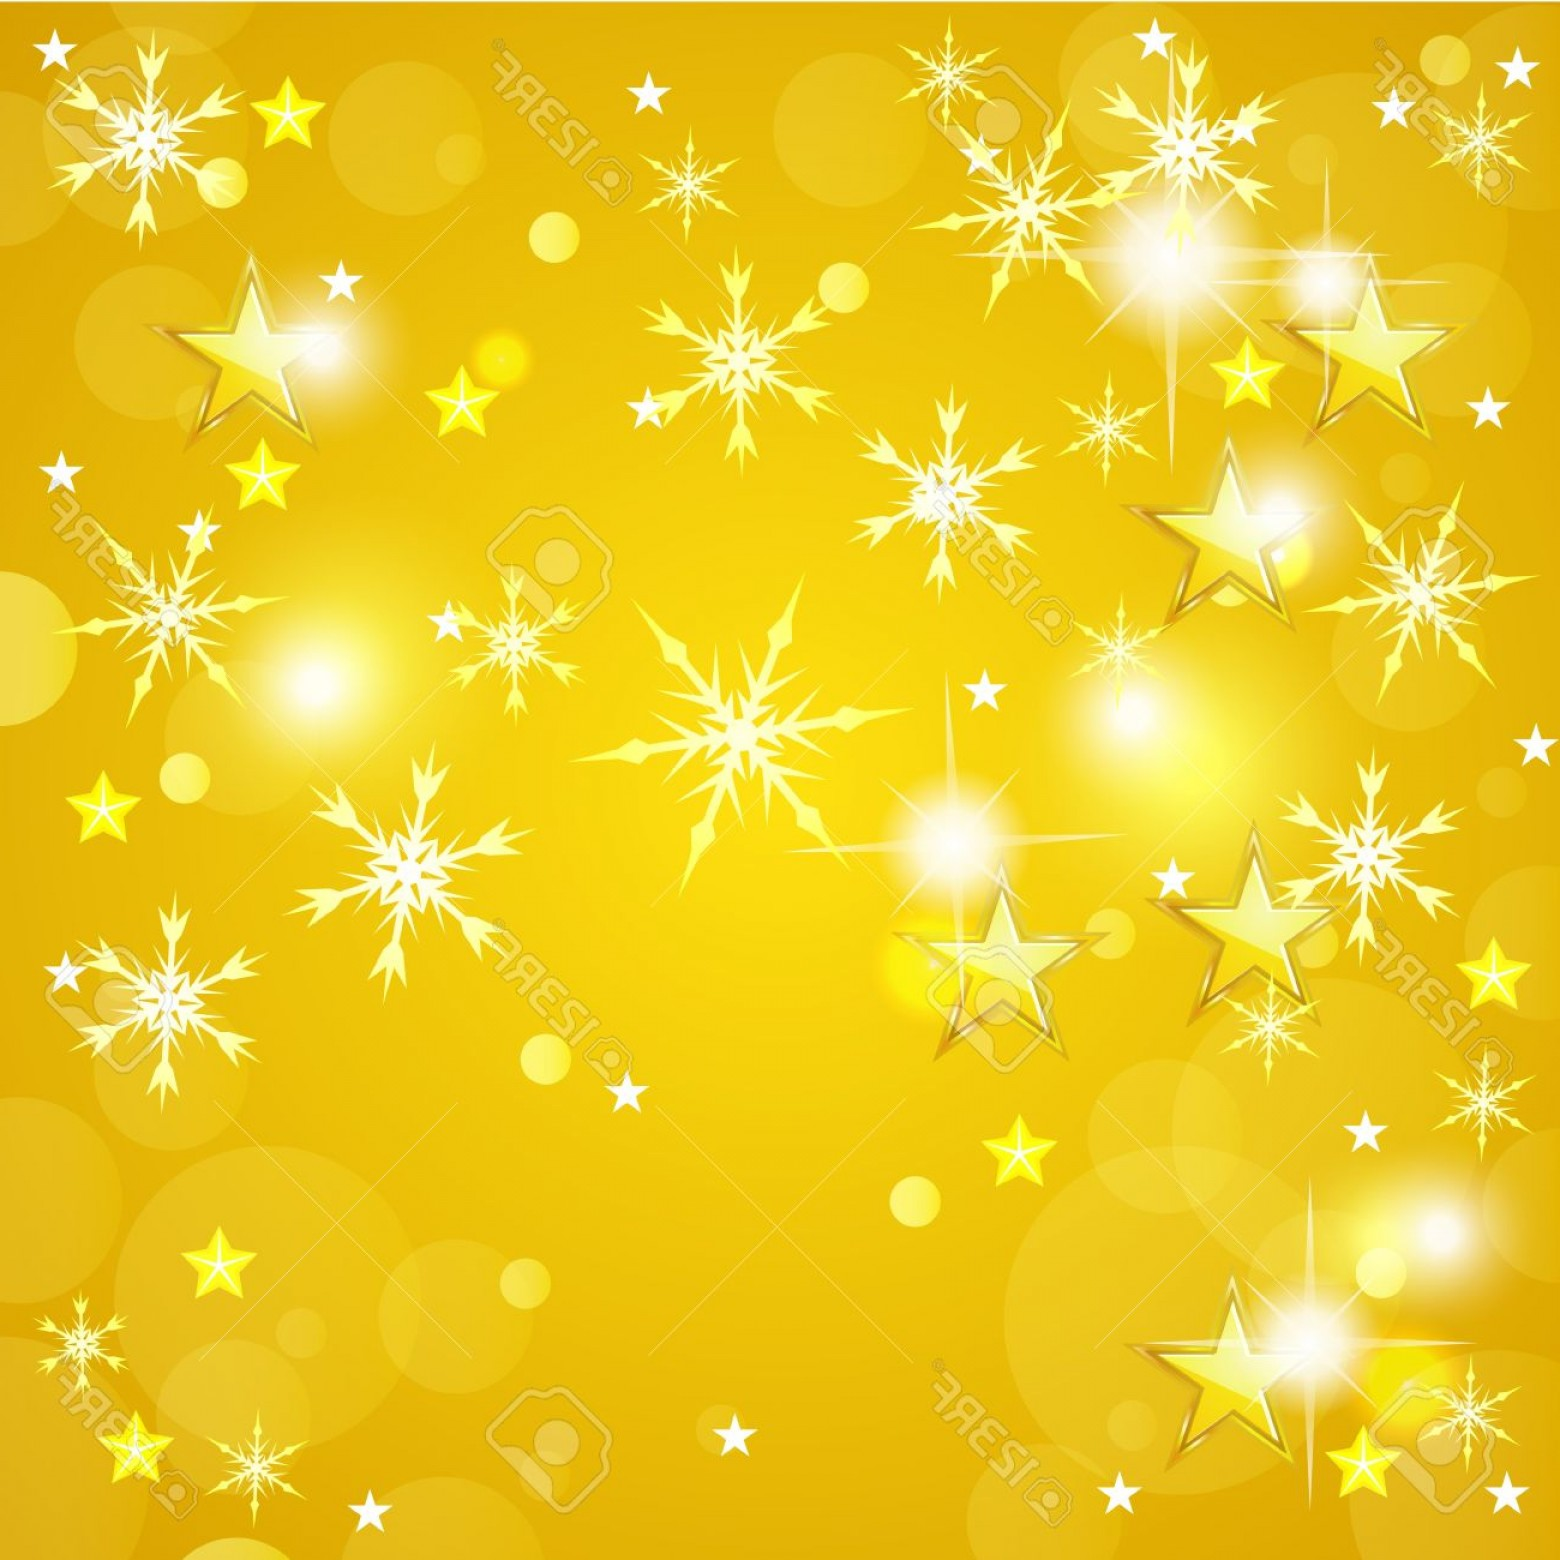 Stars Yellow Christmas Vector: Photoyellow Christmas Background With Golden Stars And Snowflakes